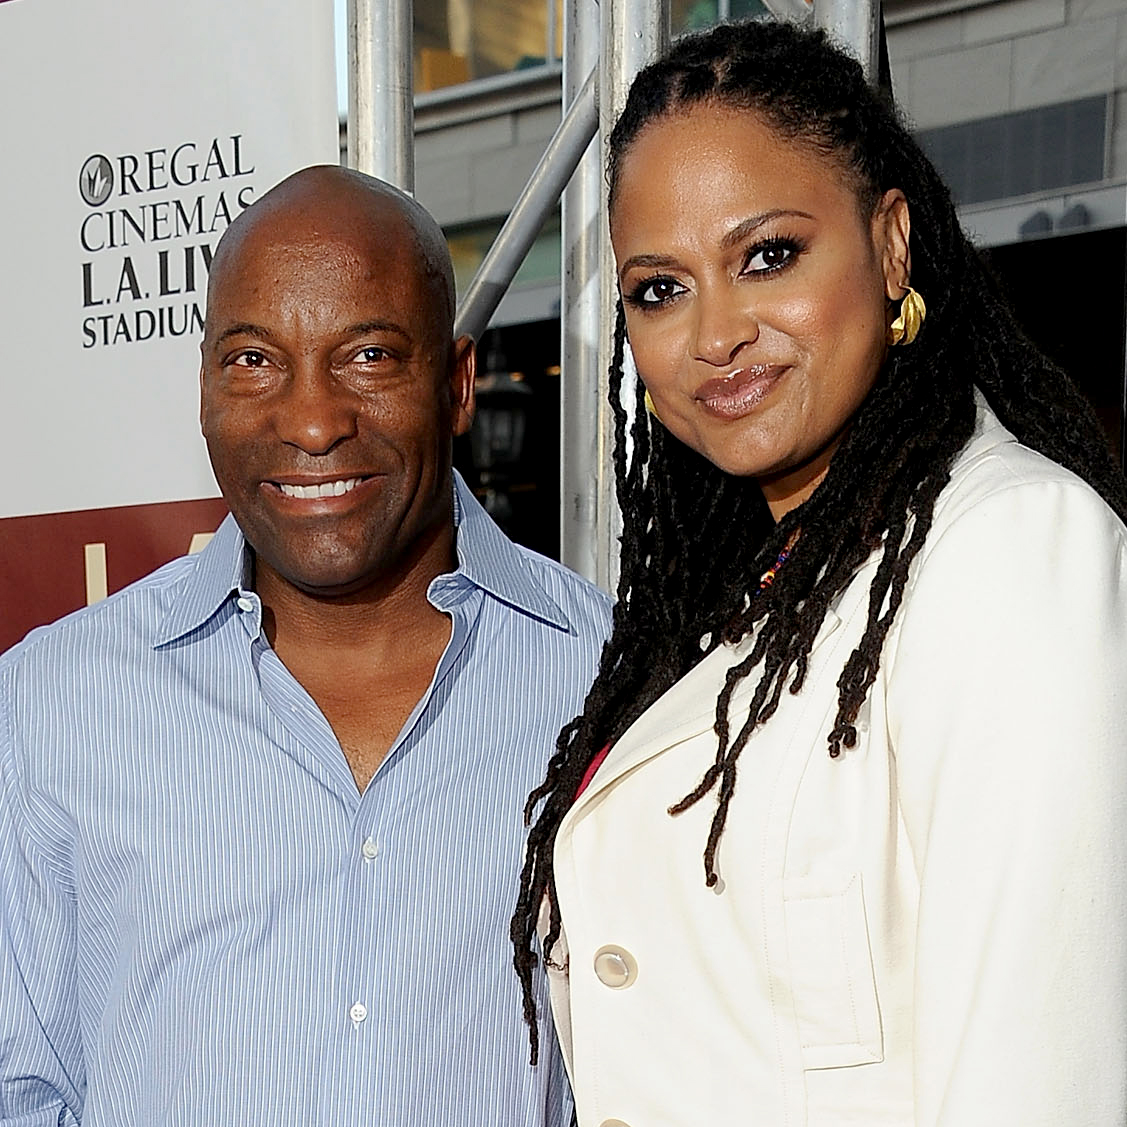 """ava-duvernay - DuVernay honored her fellow director with a sweet photo of the two sharing a hug on Twitter . """"There aren't many of us out here doing this. It's a small tribe in the grand scheme of things. He was a giant among us. Kind. Committed. And immensely talented. His films broke ground. His films mattered. He will be missed. And long remembered. Thank you, John. #RunIntoHisArms"""""""